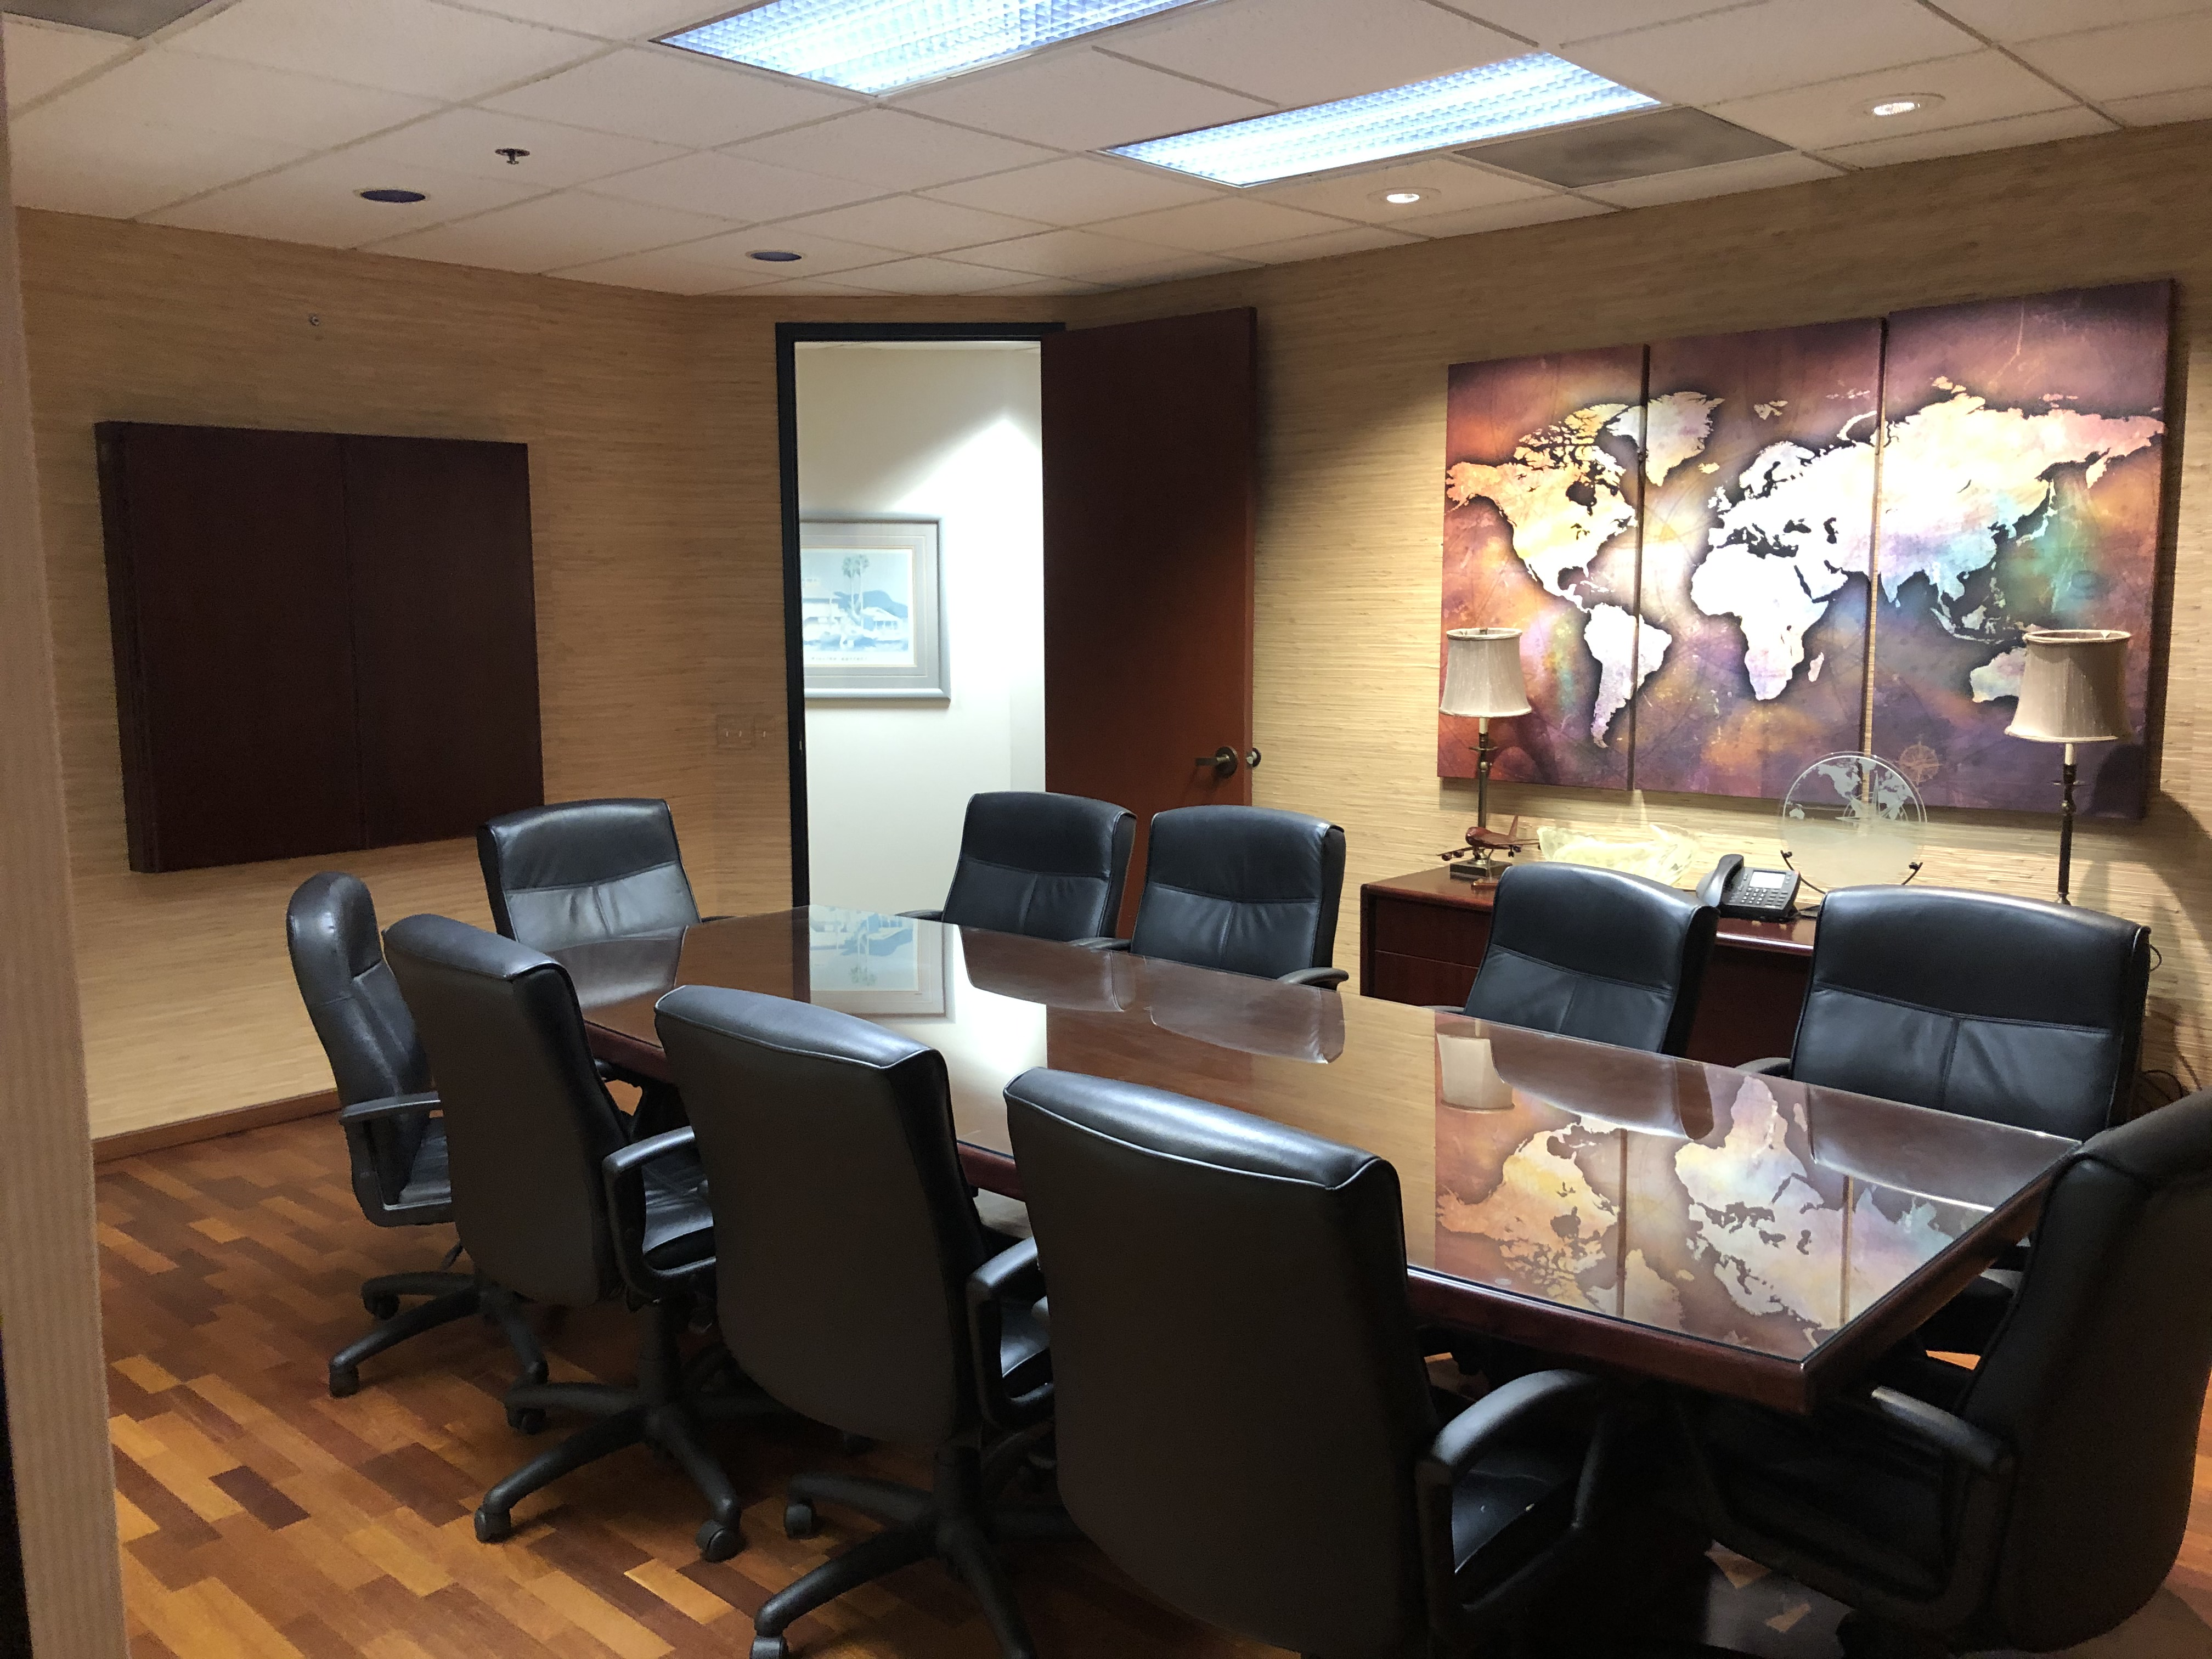 9710 Scranton Rd Sublease San Diego, CA 92121 Conference Room